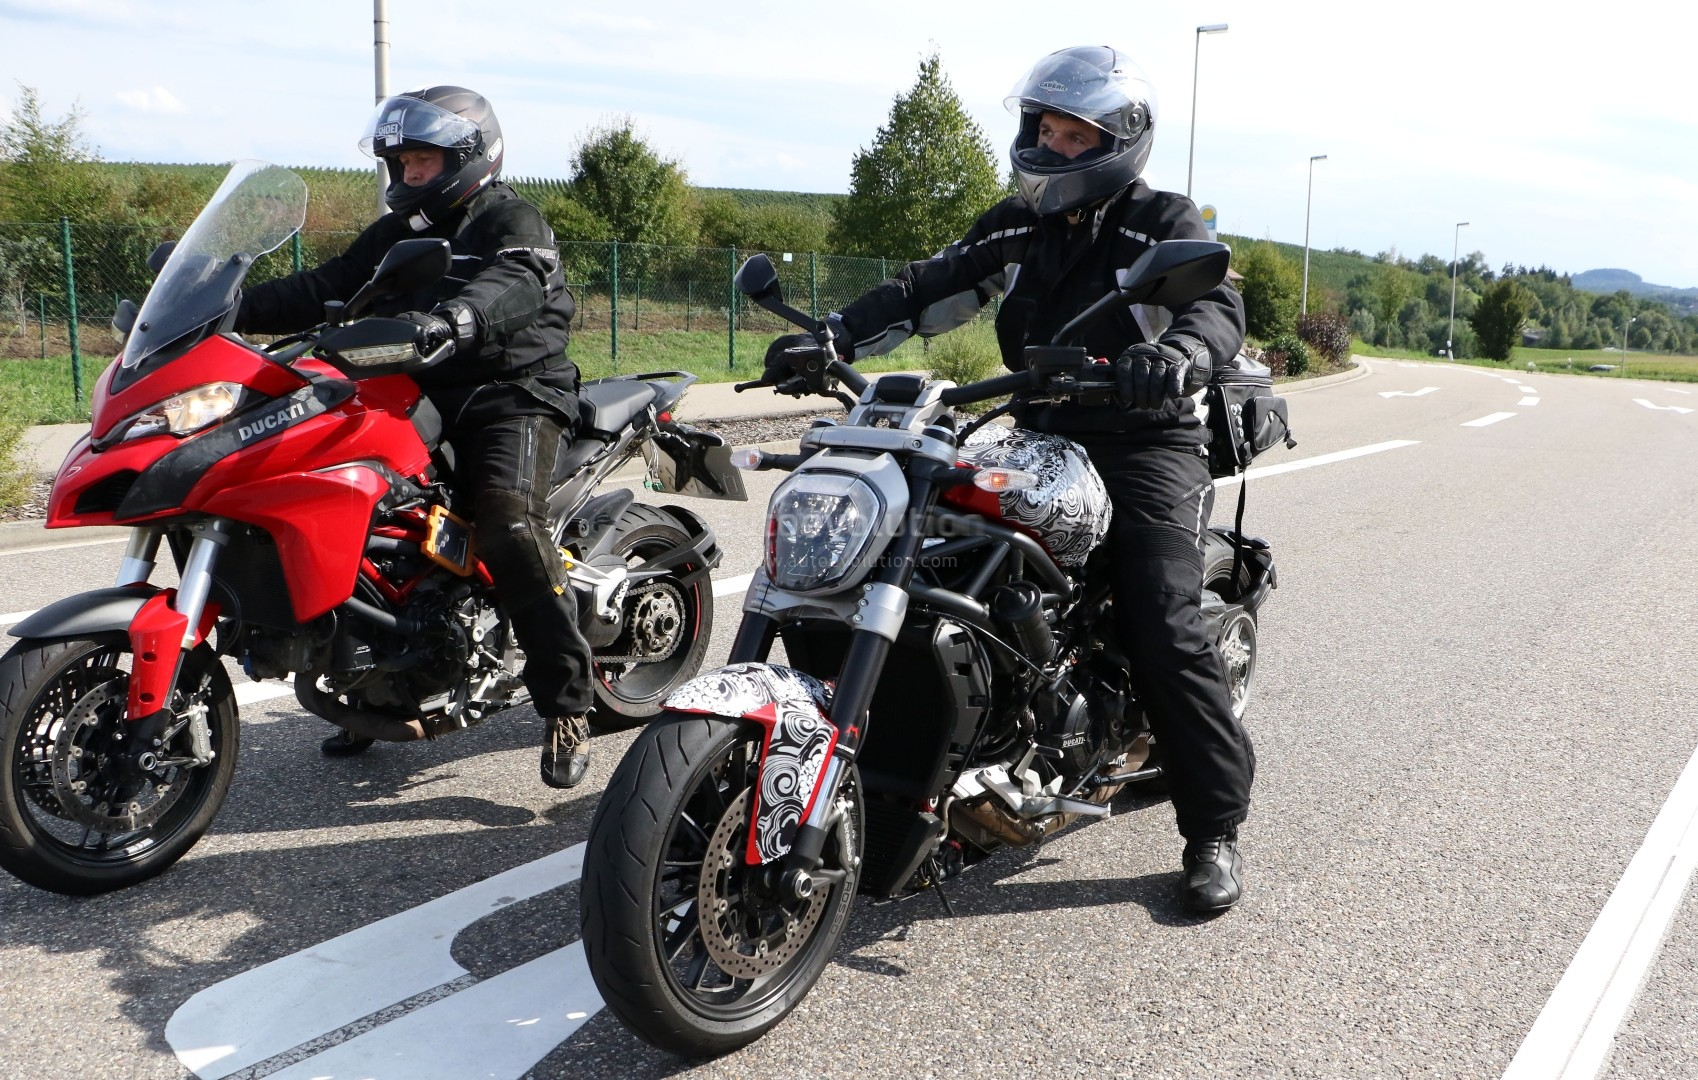 Spyshots of the Belt-Driven Ducati Diavel Show a Much Different Beast - autoevolution